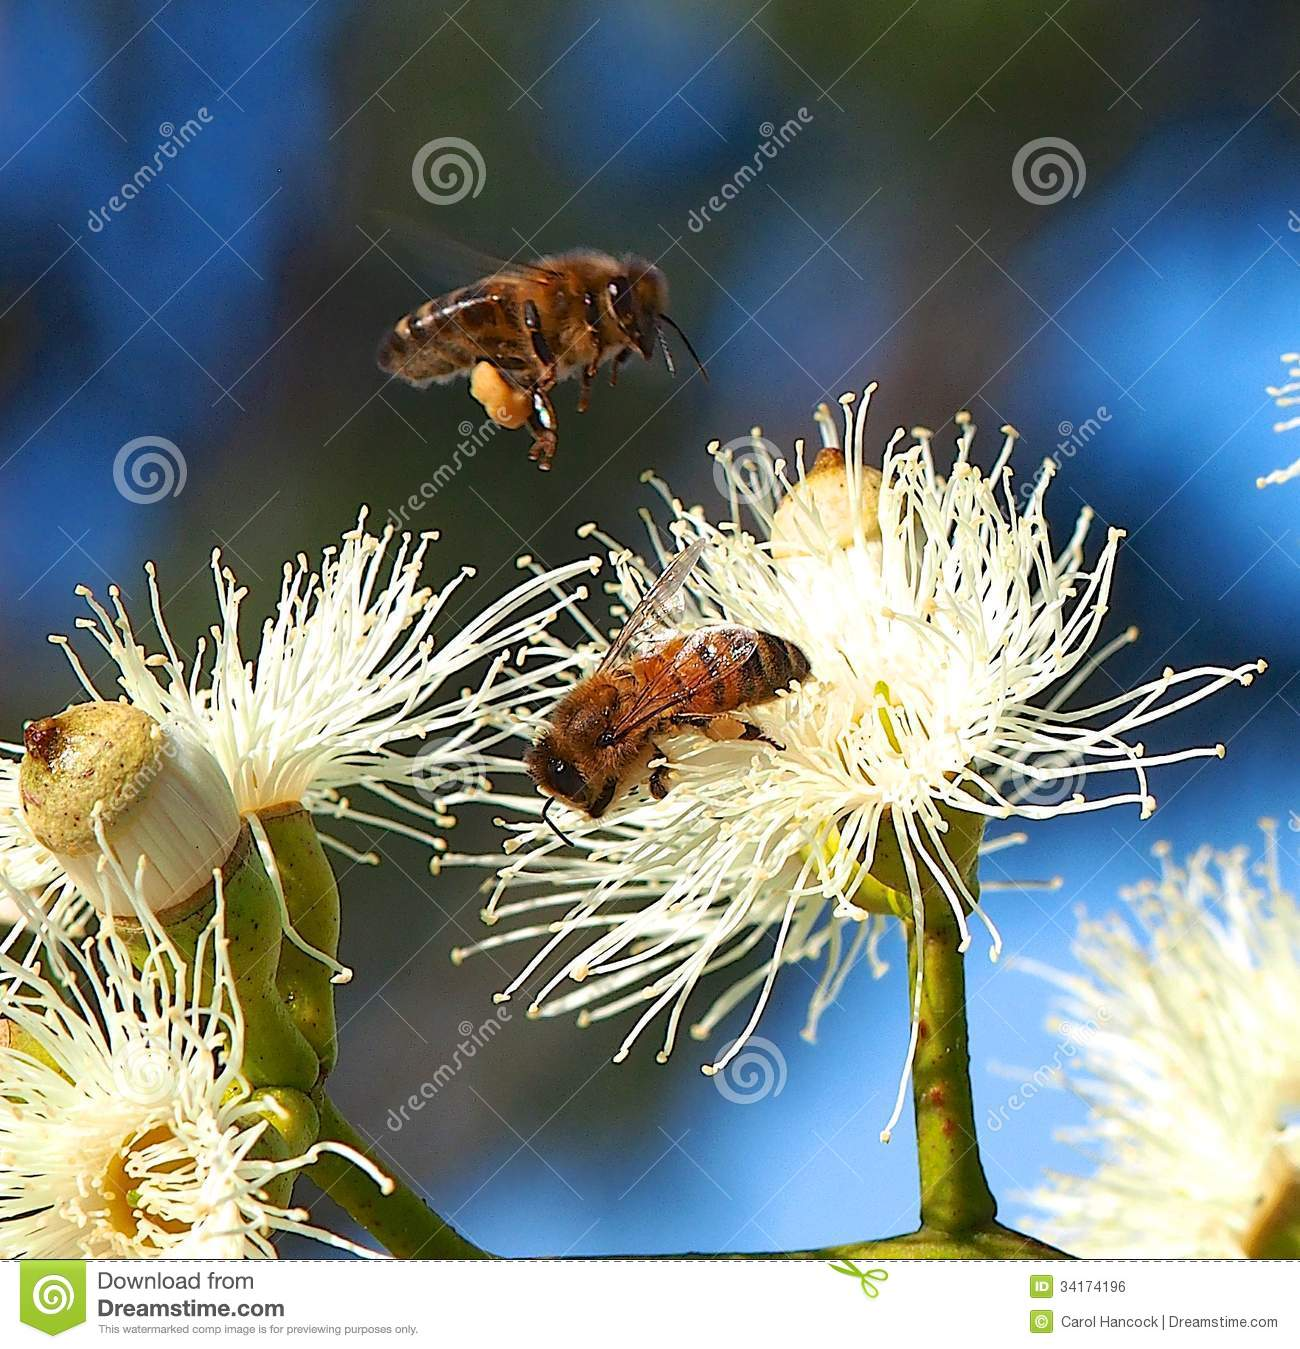 Honey Bees Busy Pollinating Sugar Gum Tree (Eukalyptus cladocalyx)